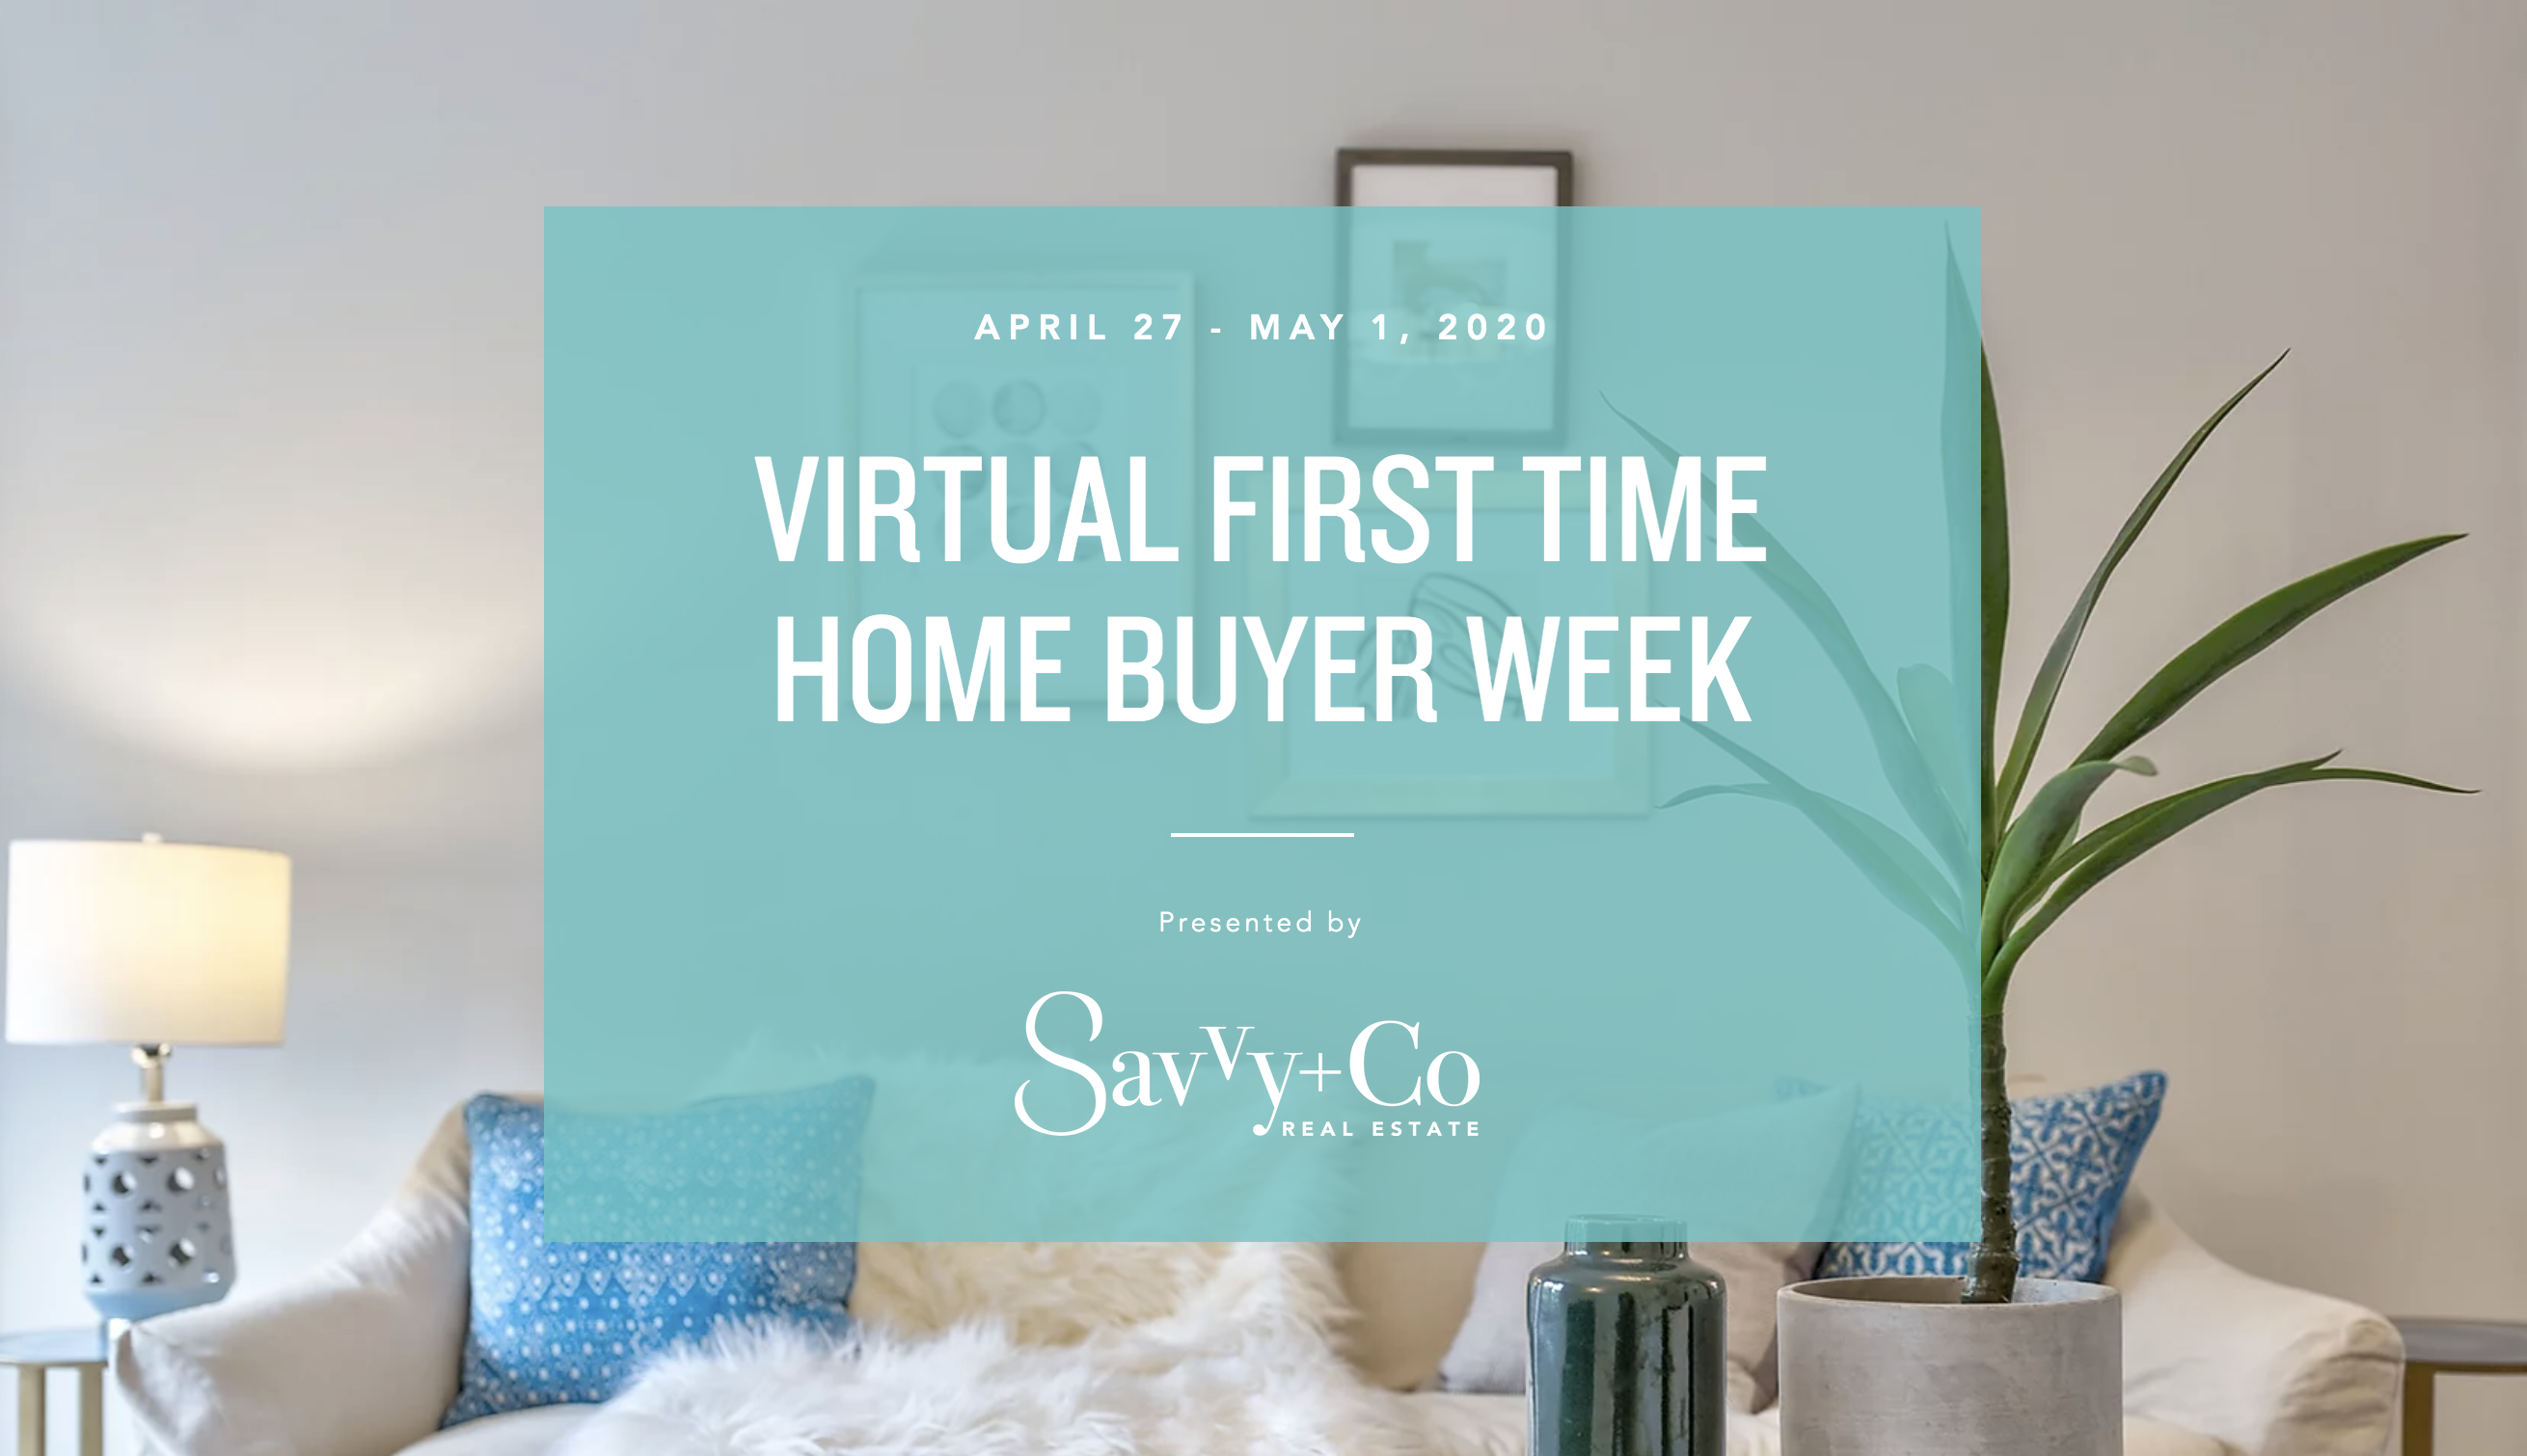 Need a change of scenery? Learn how to buy a home April 27-May 1